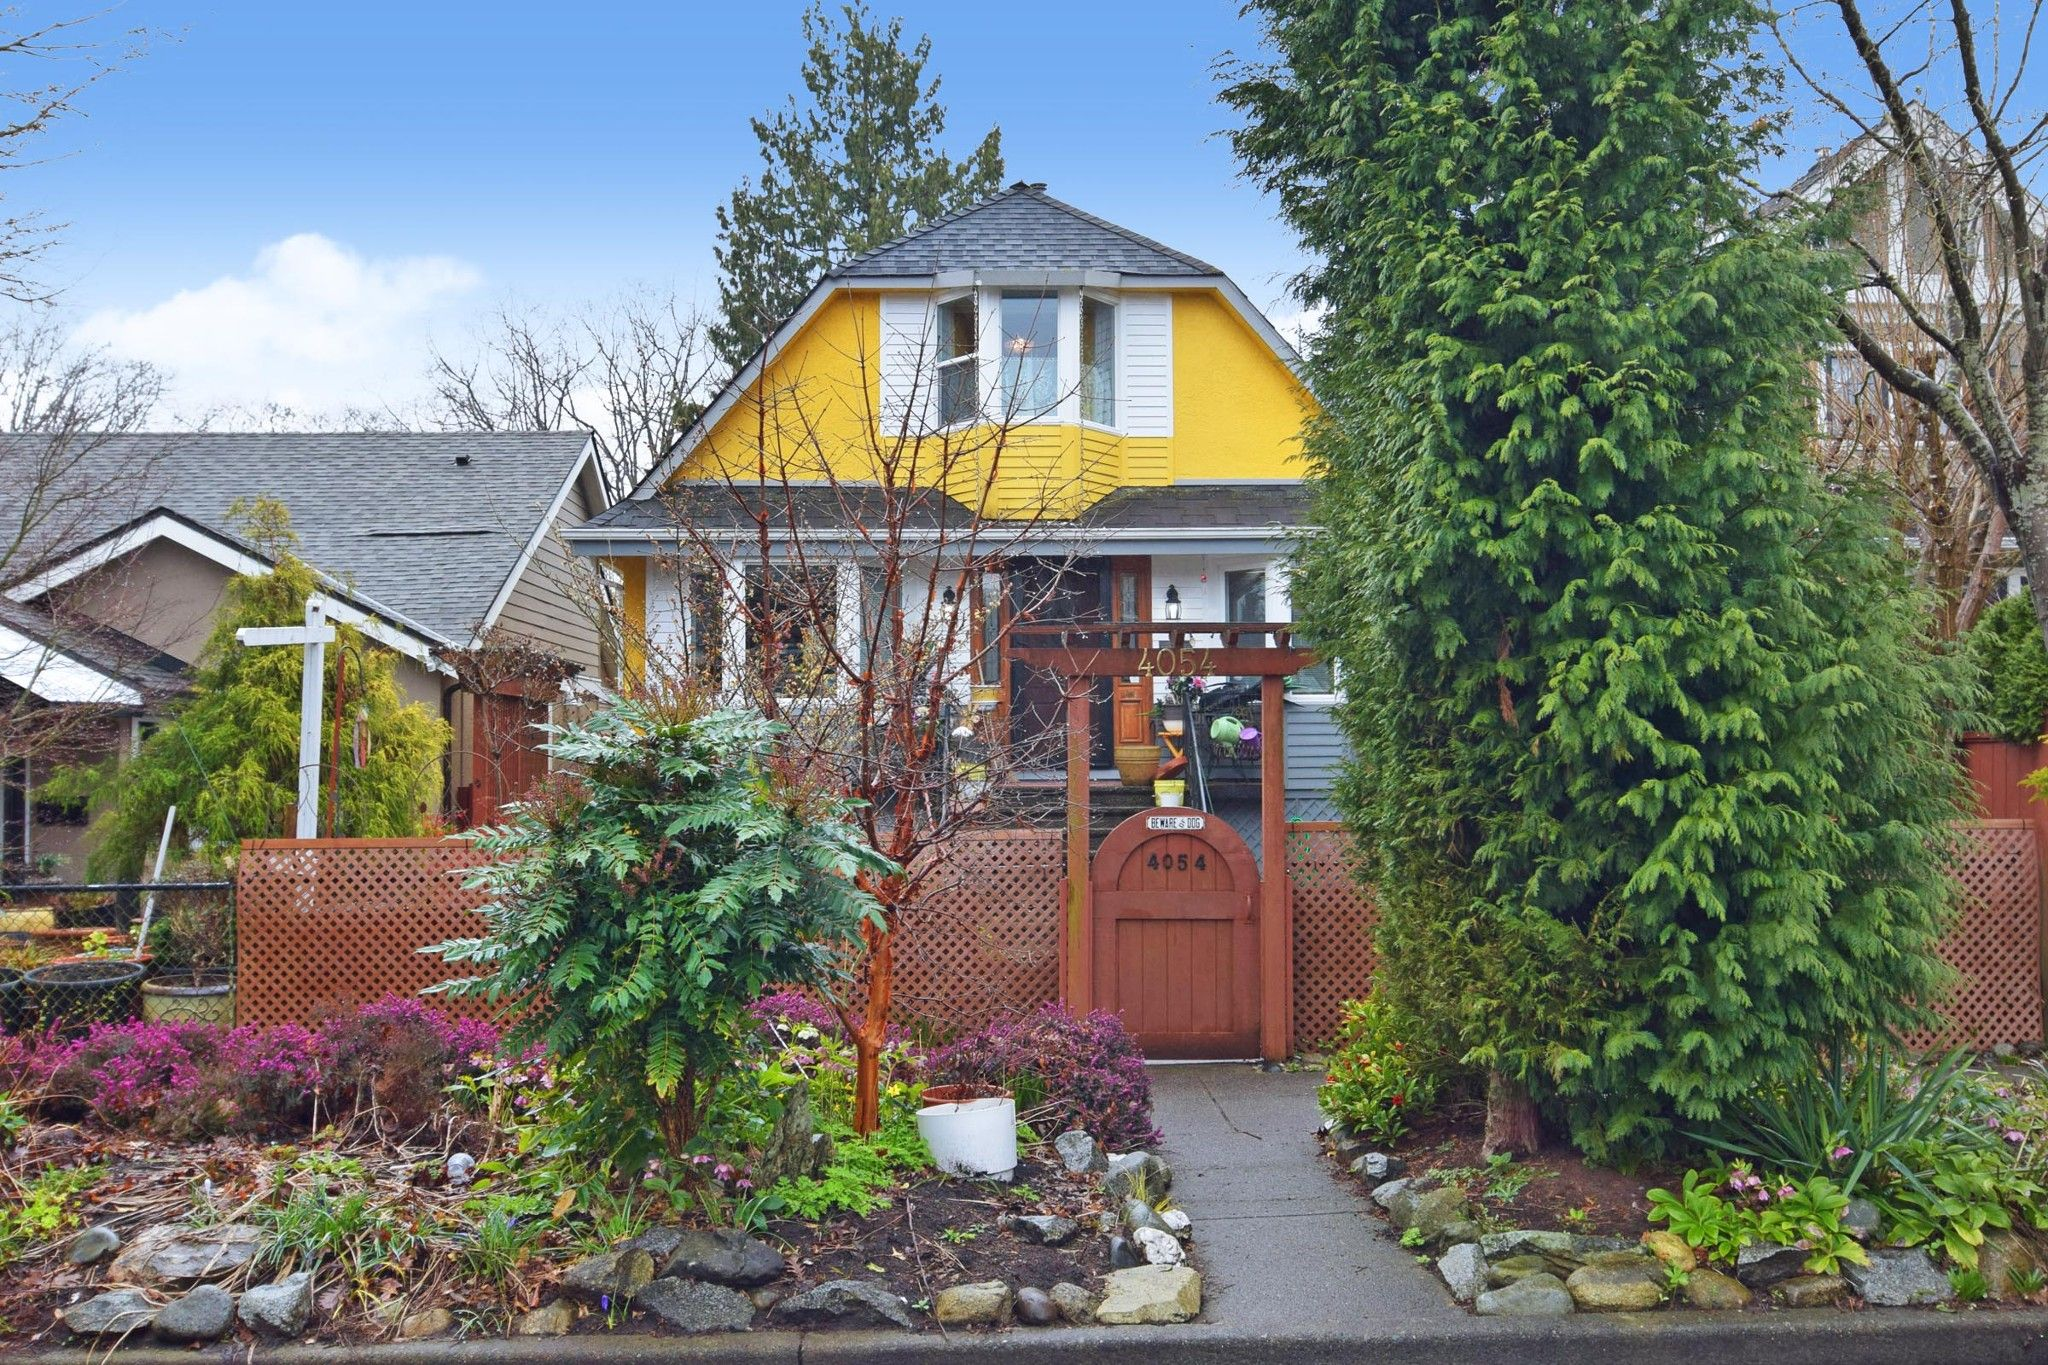 Main Photo: 4054 W 31ST Avenue in Vancouver: Dunbar House for sale (Vancouver West)  : MLS®# R2556592